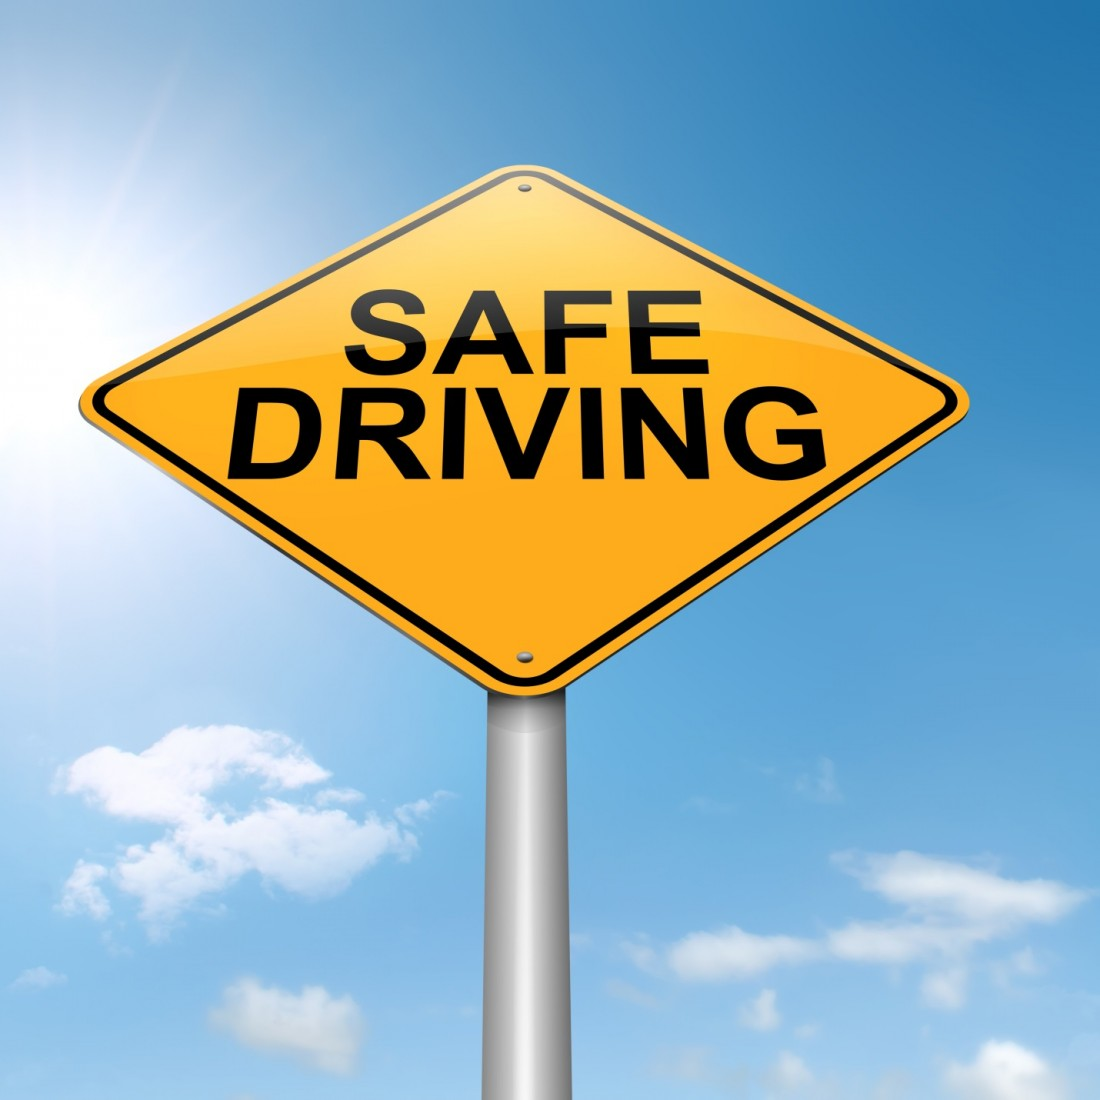 Be a defensive driver, not an offensive one - Blog - Dotten Collision, Inc. - safe_driving